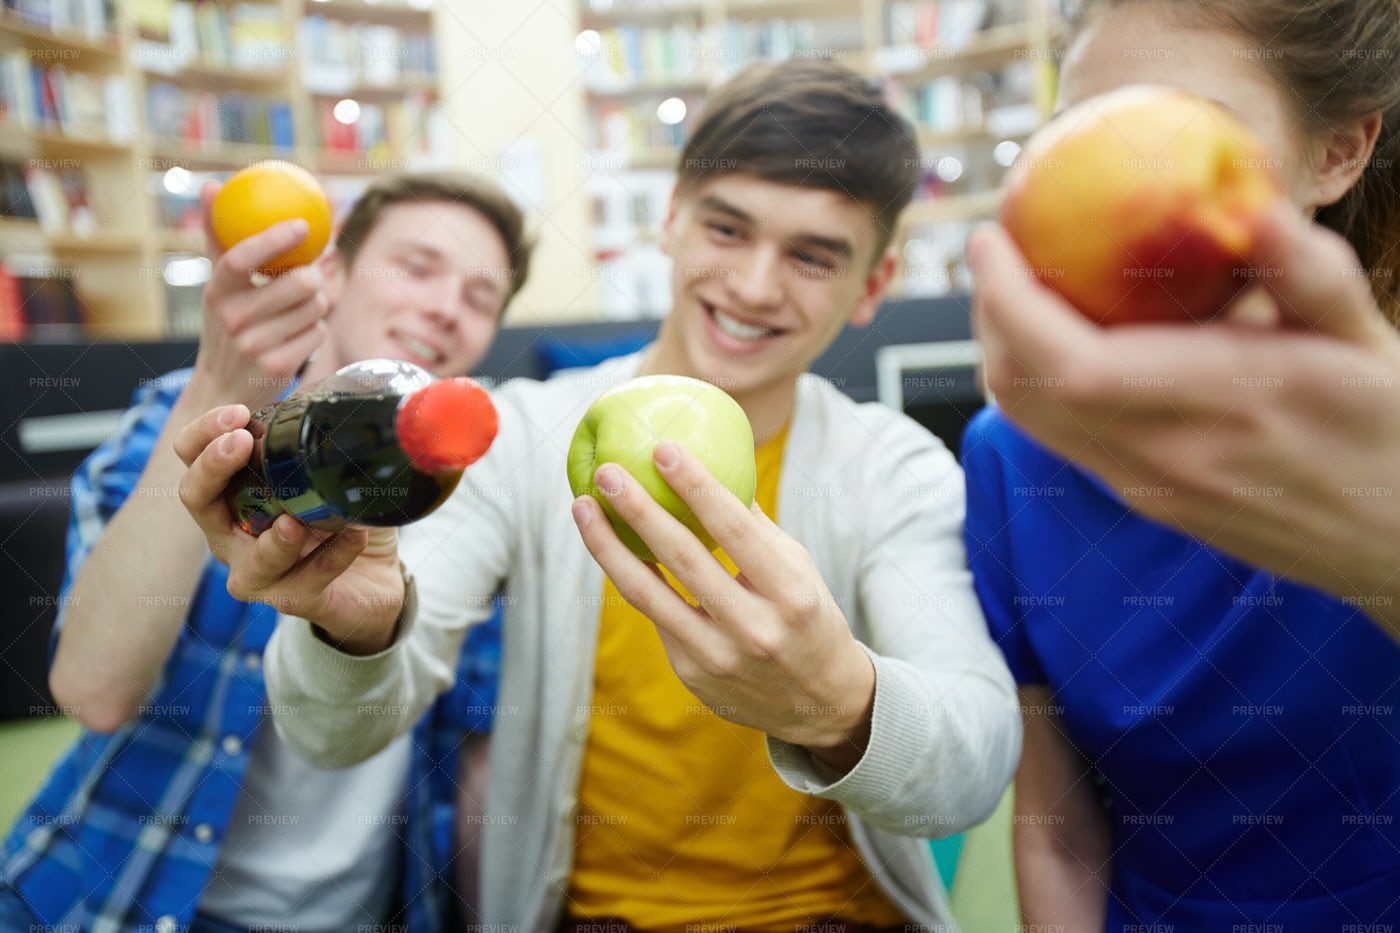 Astronomy Study Group In Library: Stock Photos